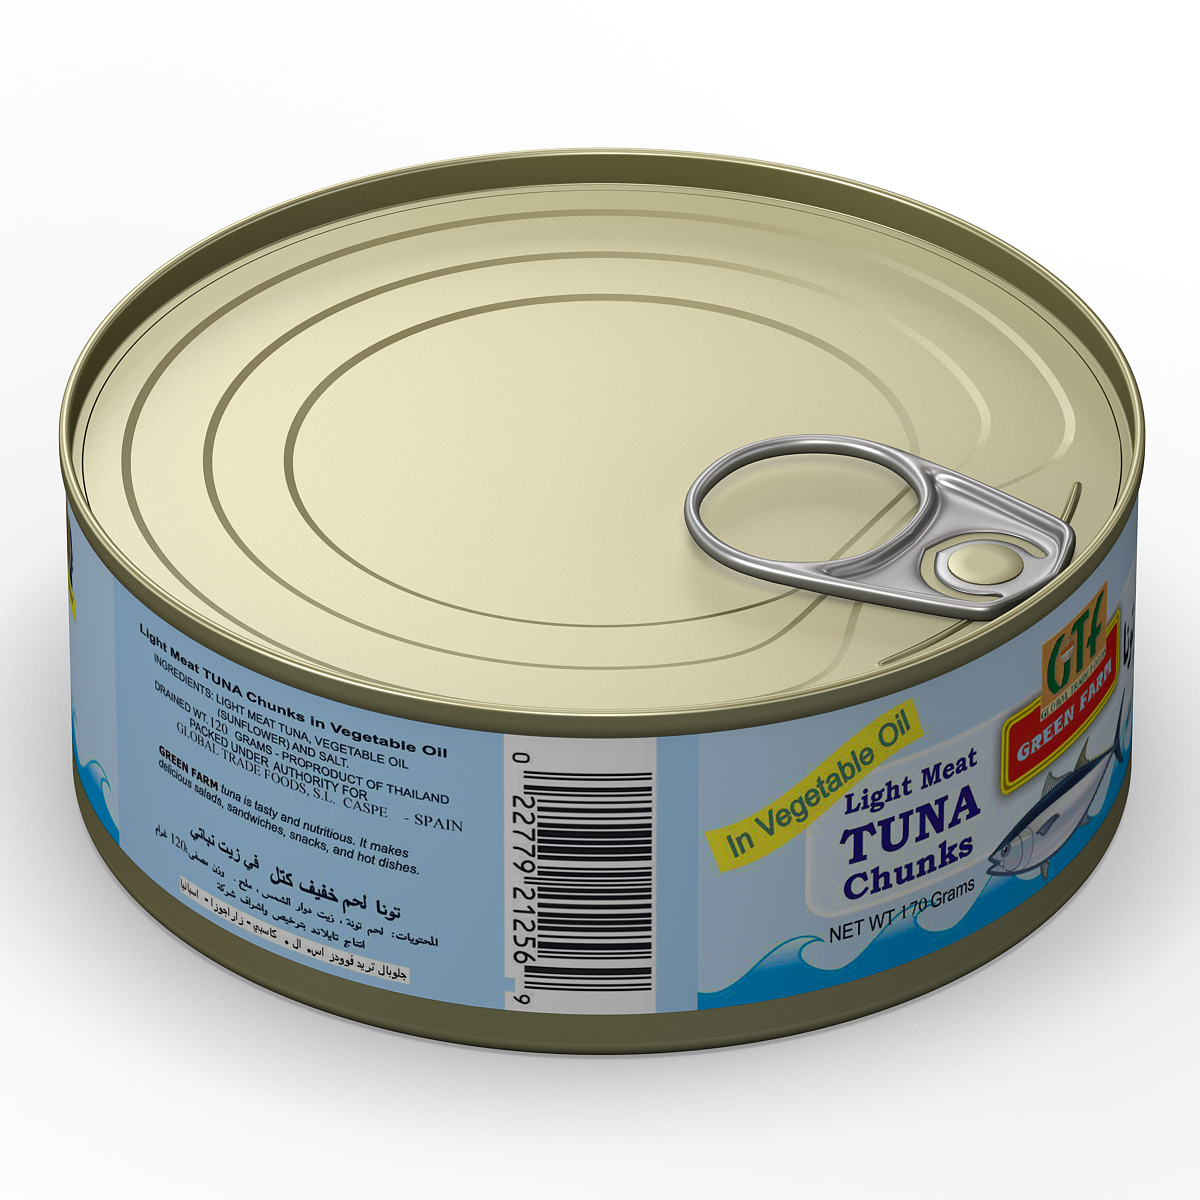 Canned_Tuna_V3_001.jpg